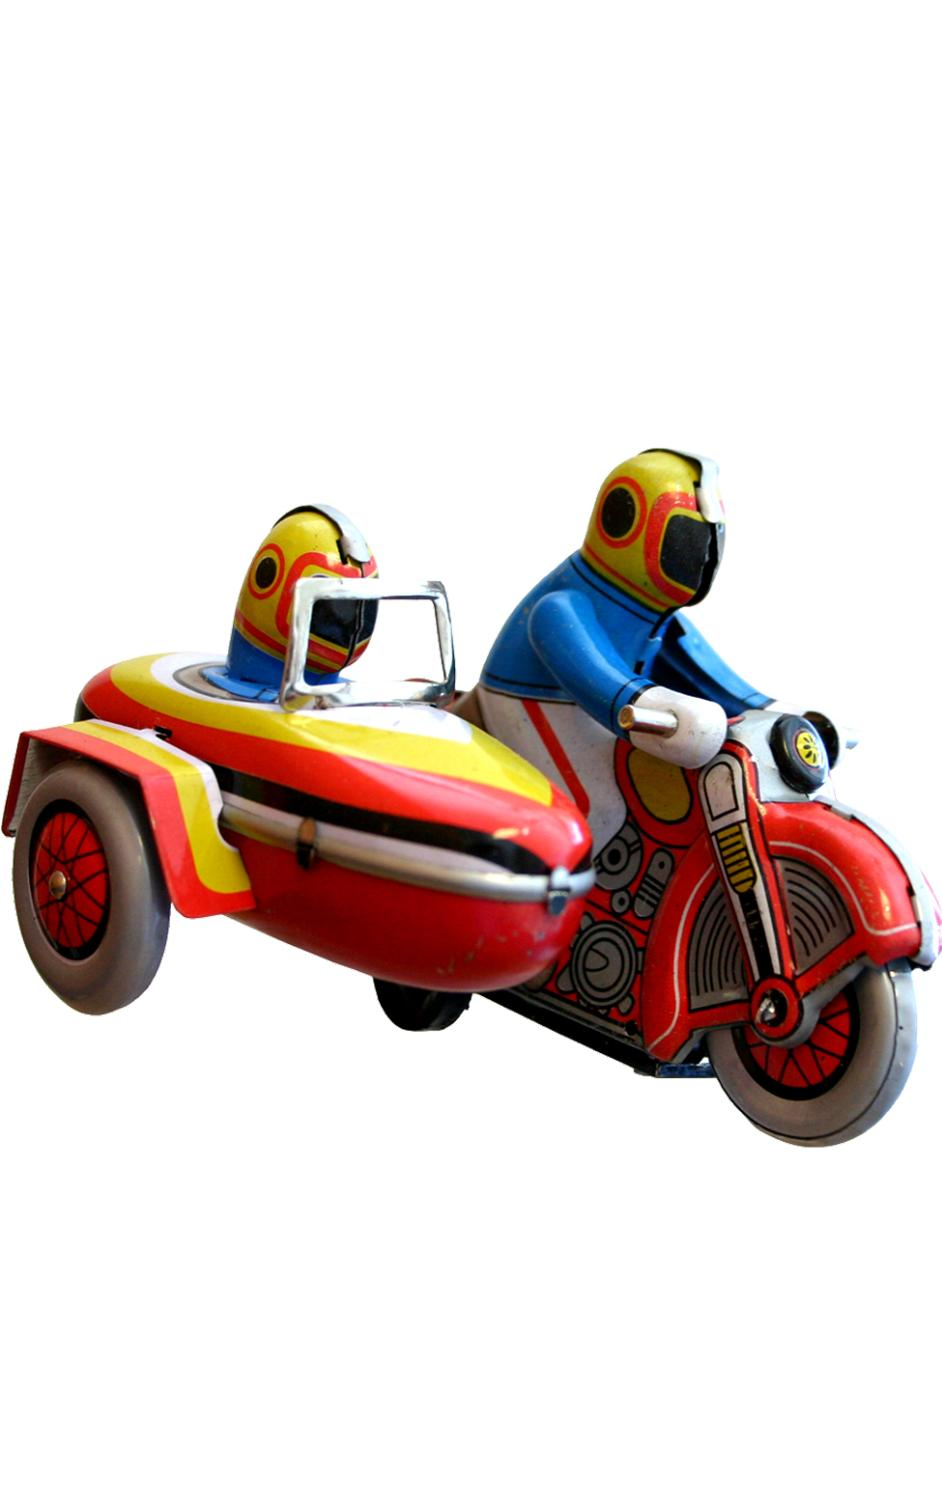 MS281 - Collectible Tin Toy - Motorcyle with Sidecar - 3.25